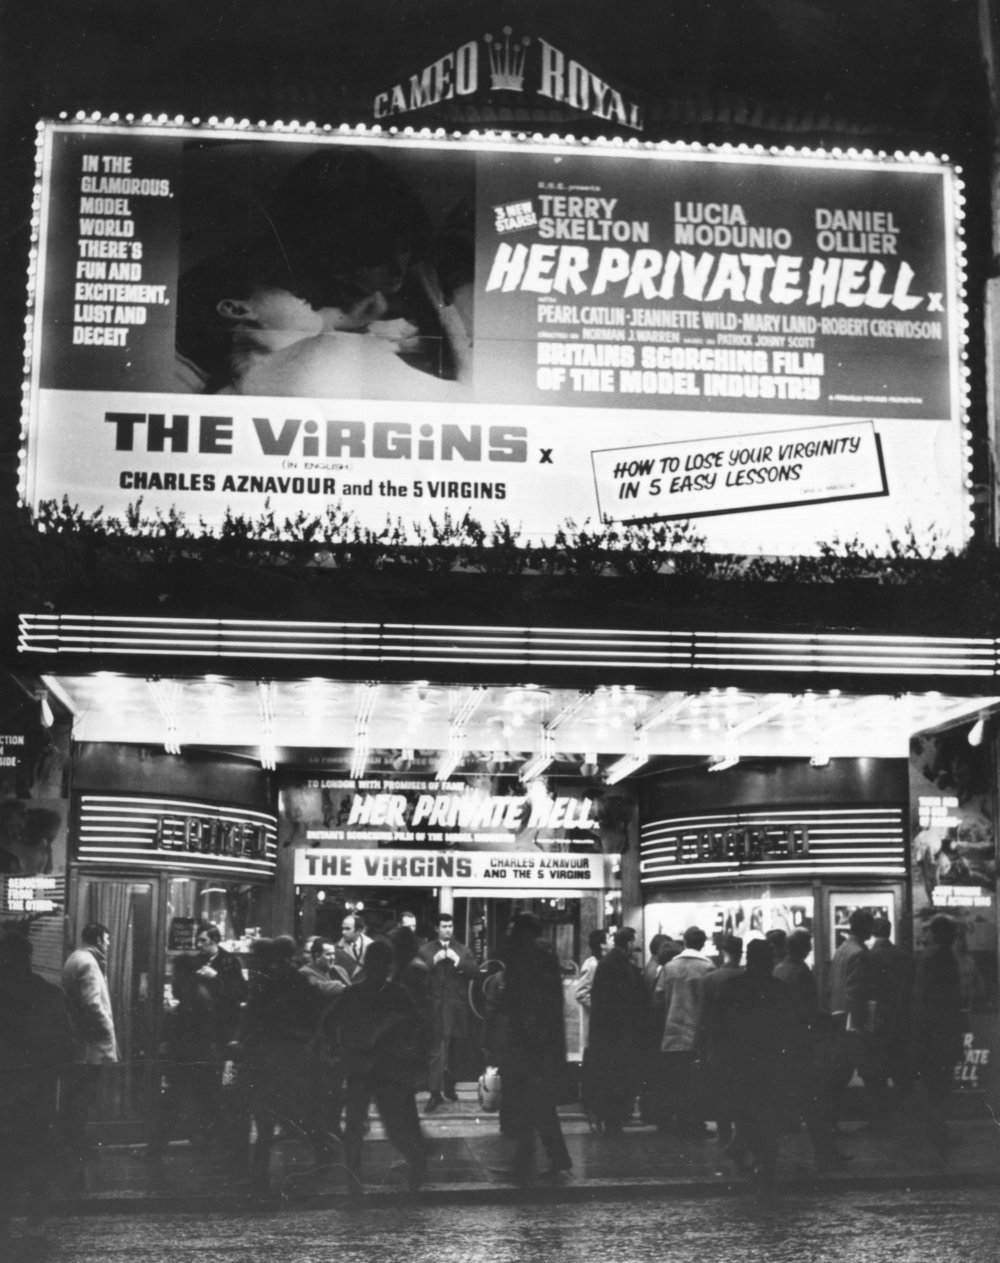 Cameo Royal Cinema, Great Windmill Street, London, 1967